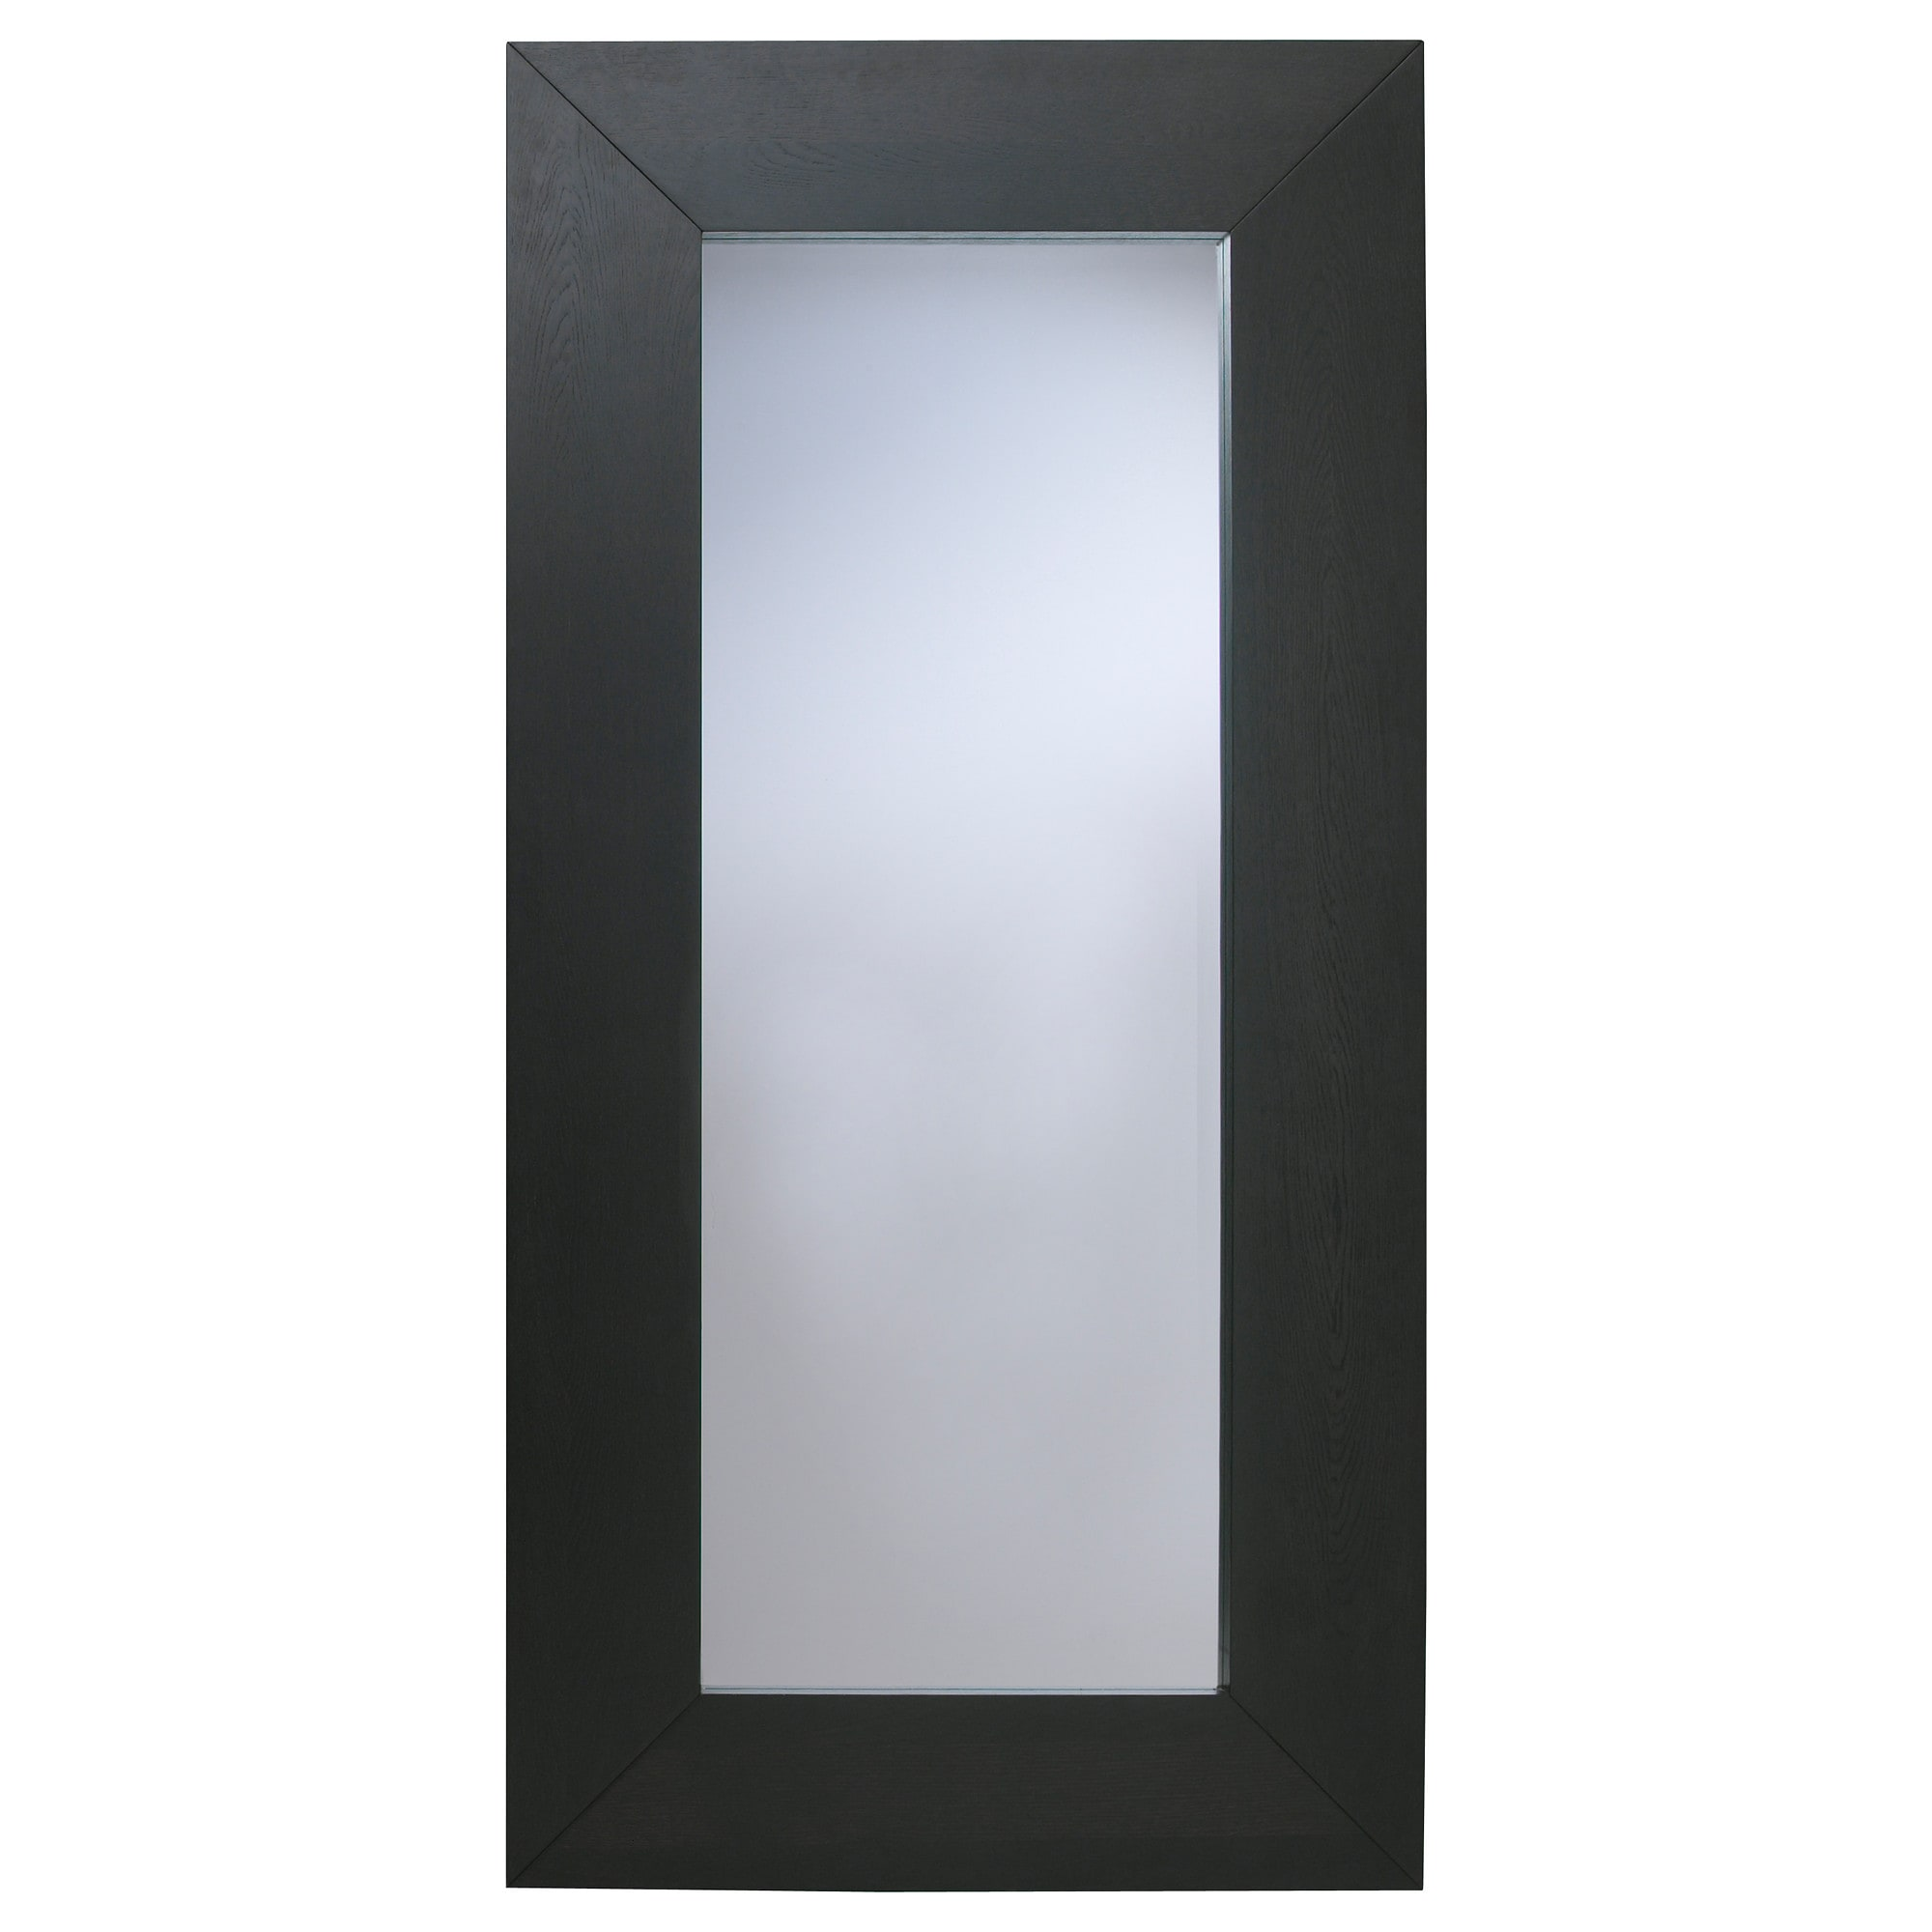 Wall mirrors ikea mongstad mirror black brown width 37 height 74 34 amipublicfo Choice Image